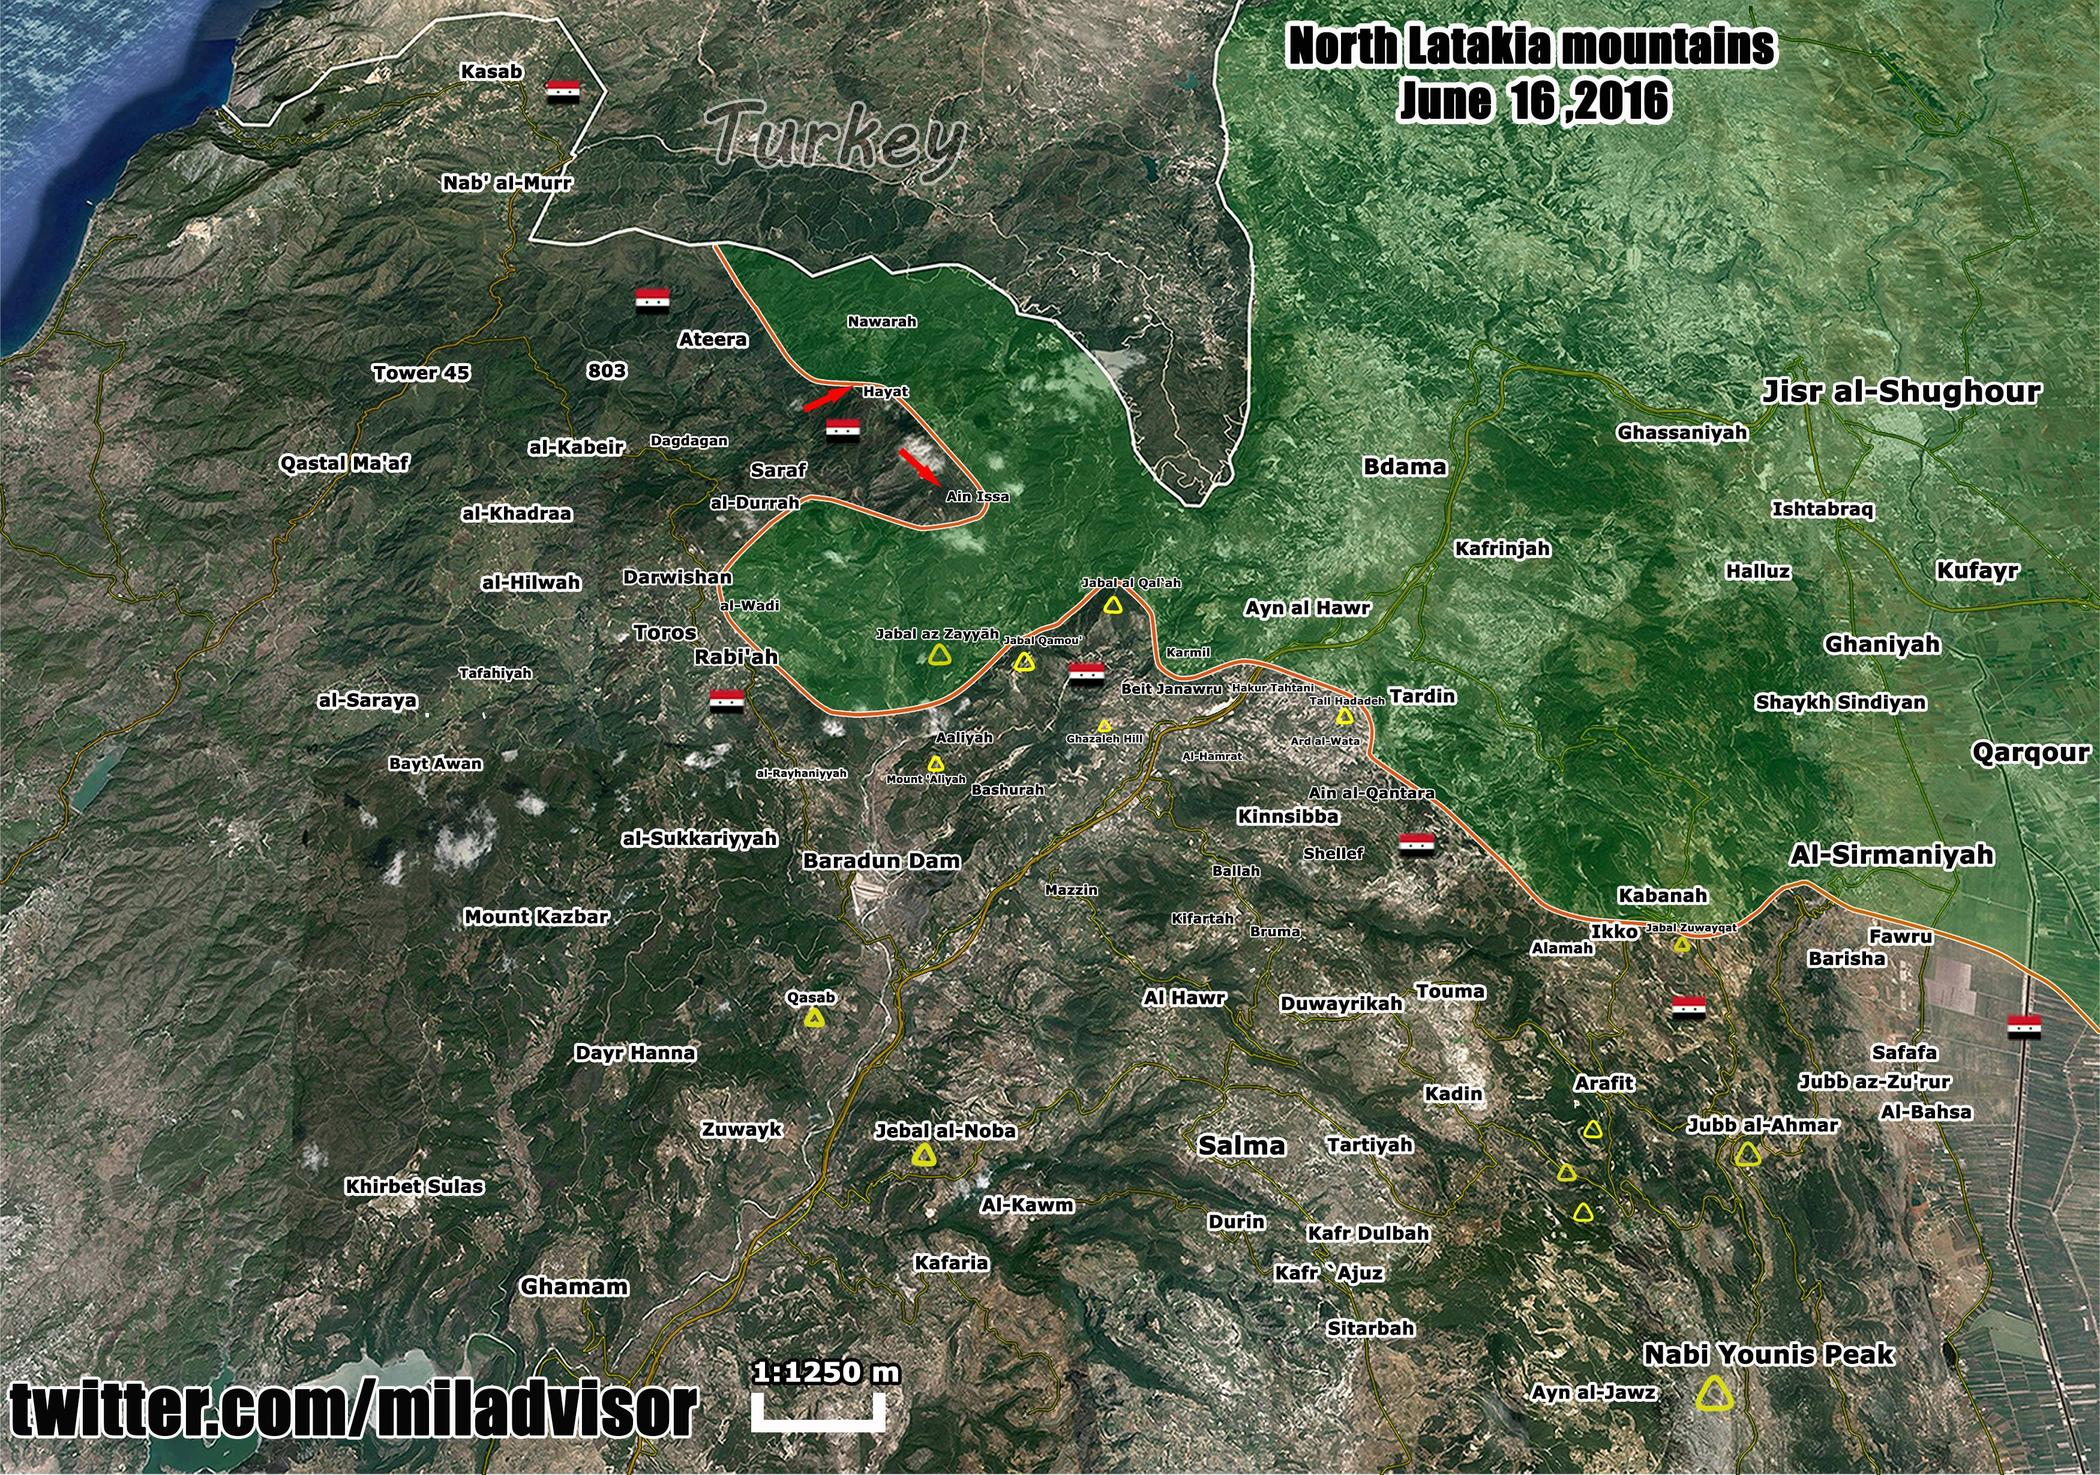 Military Situation in Northern Latakia, Syria on June 16